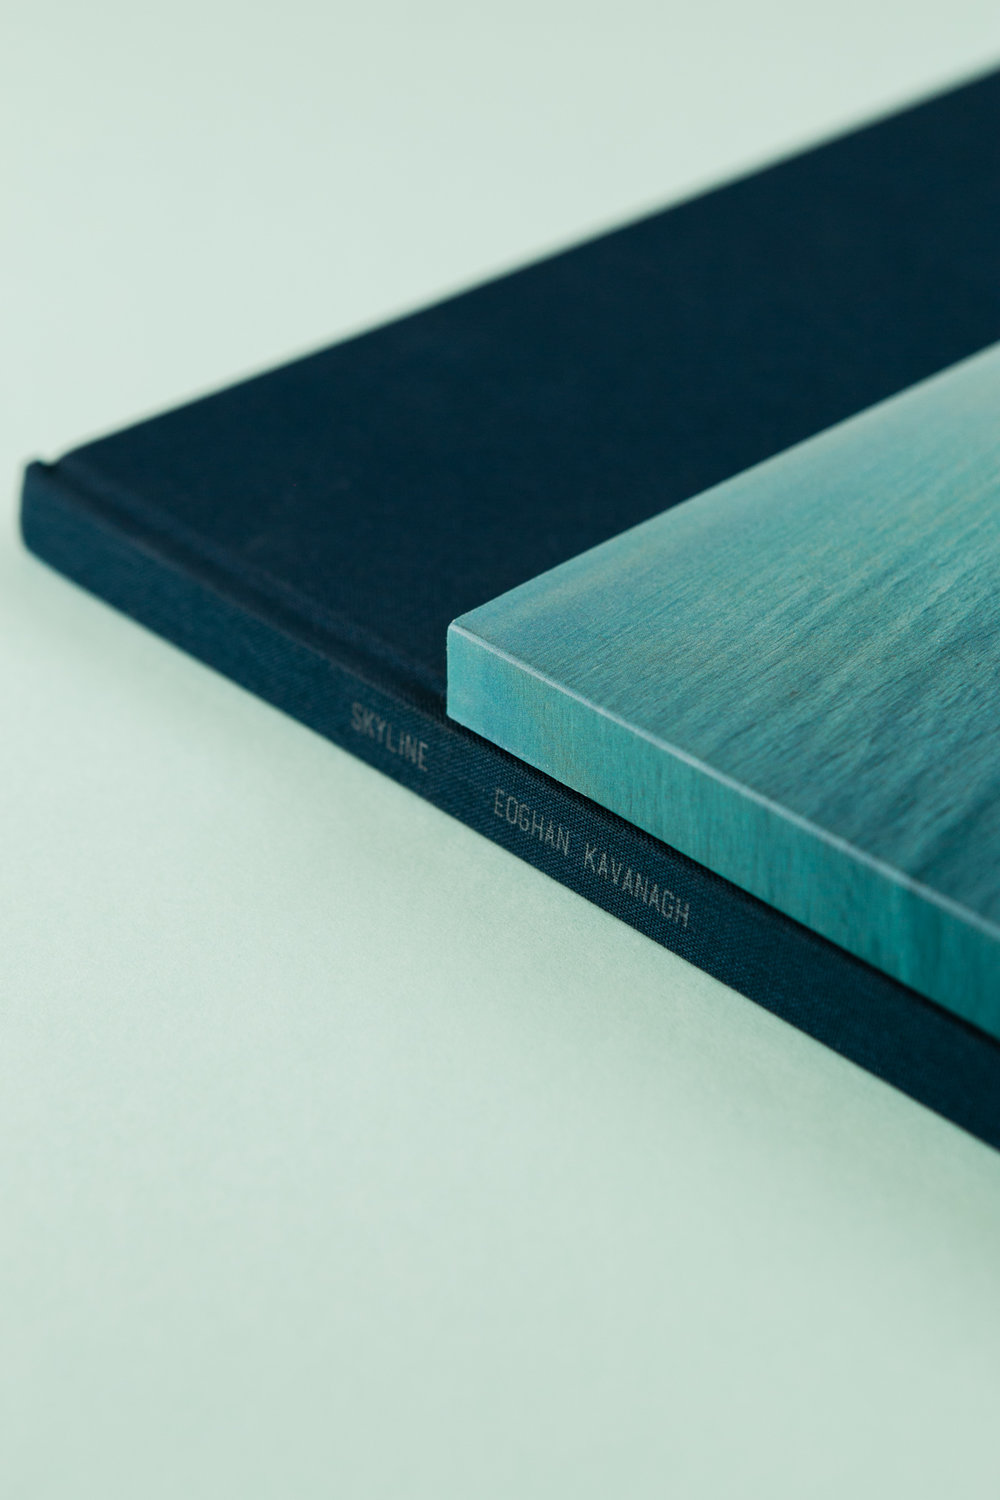 Detail of self-published photobook 'Skyline' featuring photography by Eoghan Kavanagh and design by Read That Image